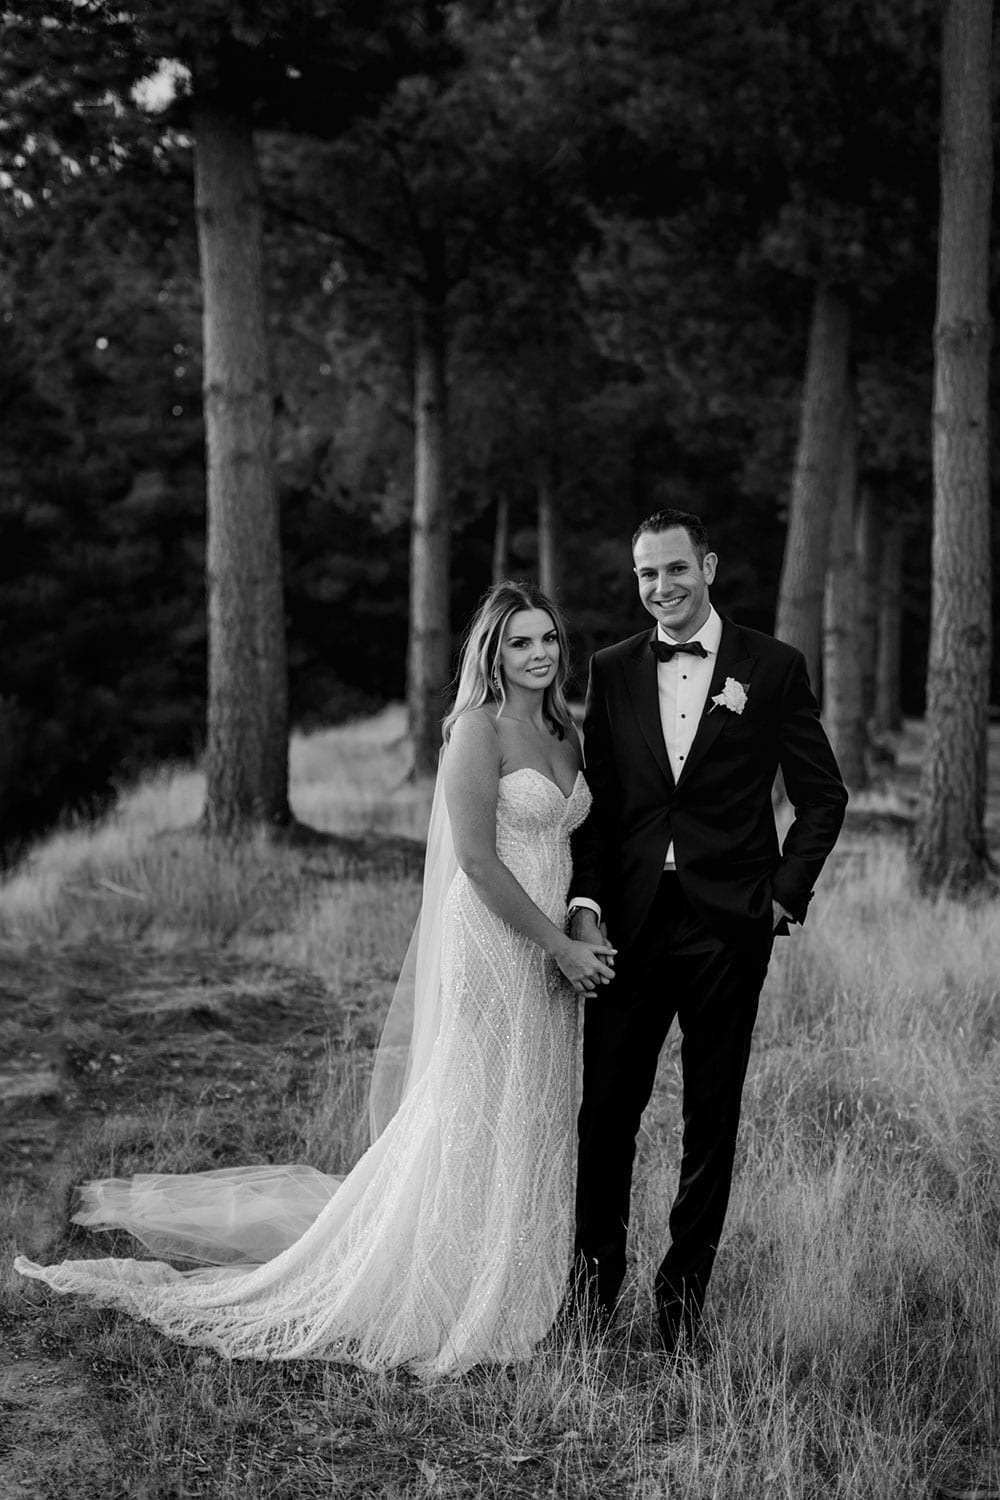 Vinka Design Features Real Weddings - bride in custom made gown, a combination of our Indi wedding dress with added beading appliqued and sewn by hand, over the top of a nude semi sheer base. With groom in woods in black and white